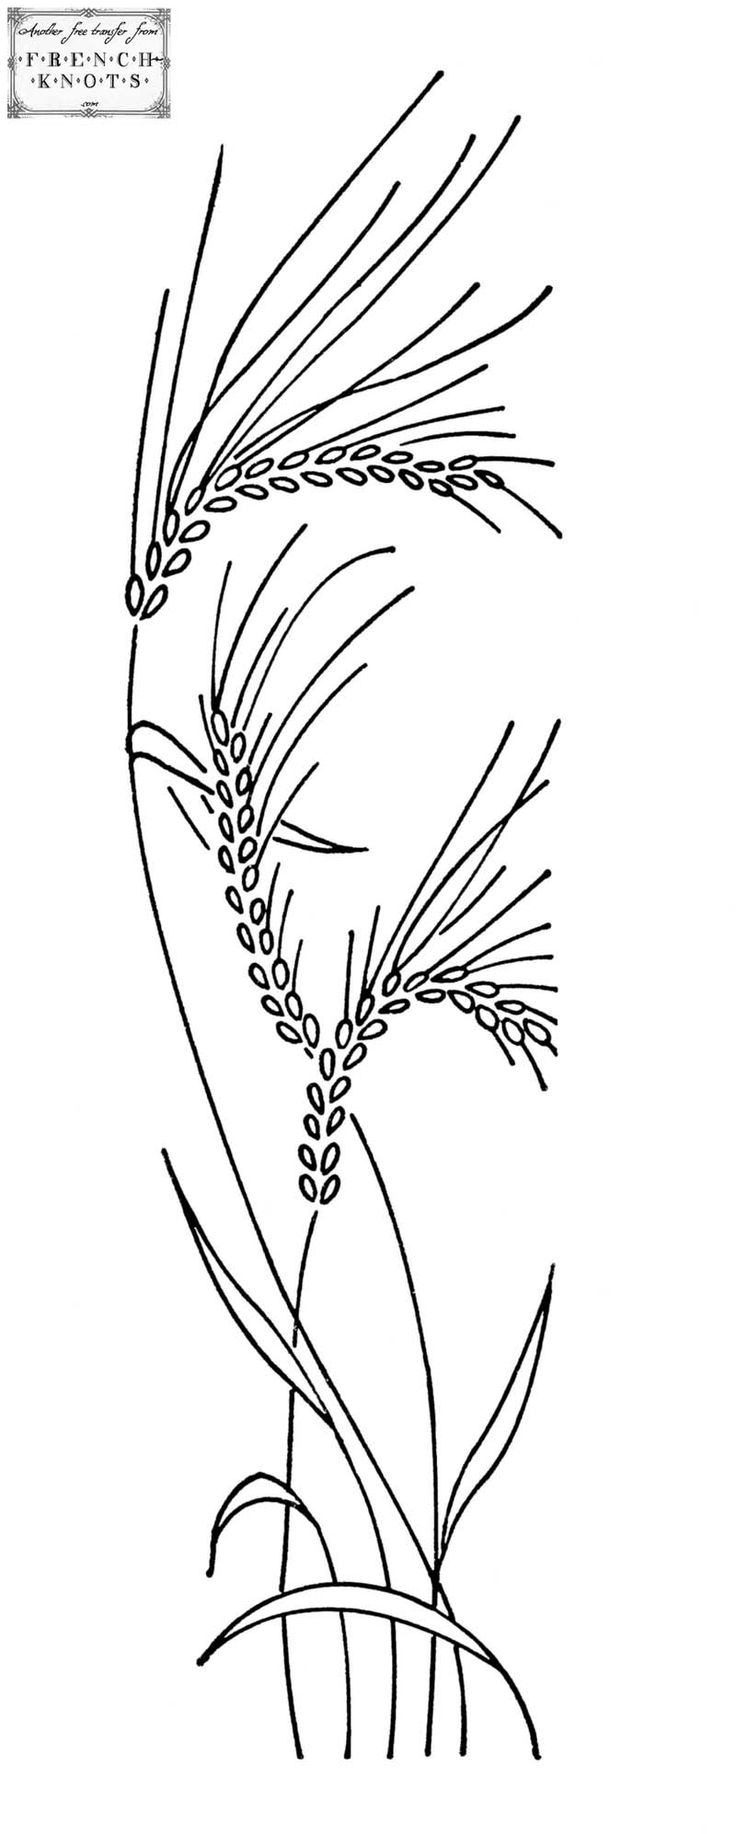 Another wheat embroidery transfer pattern